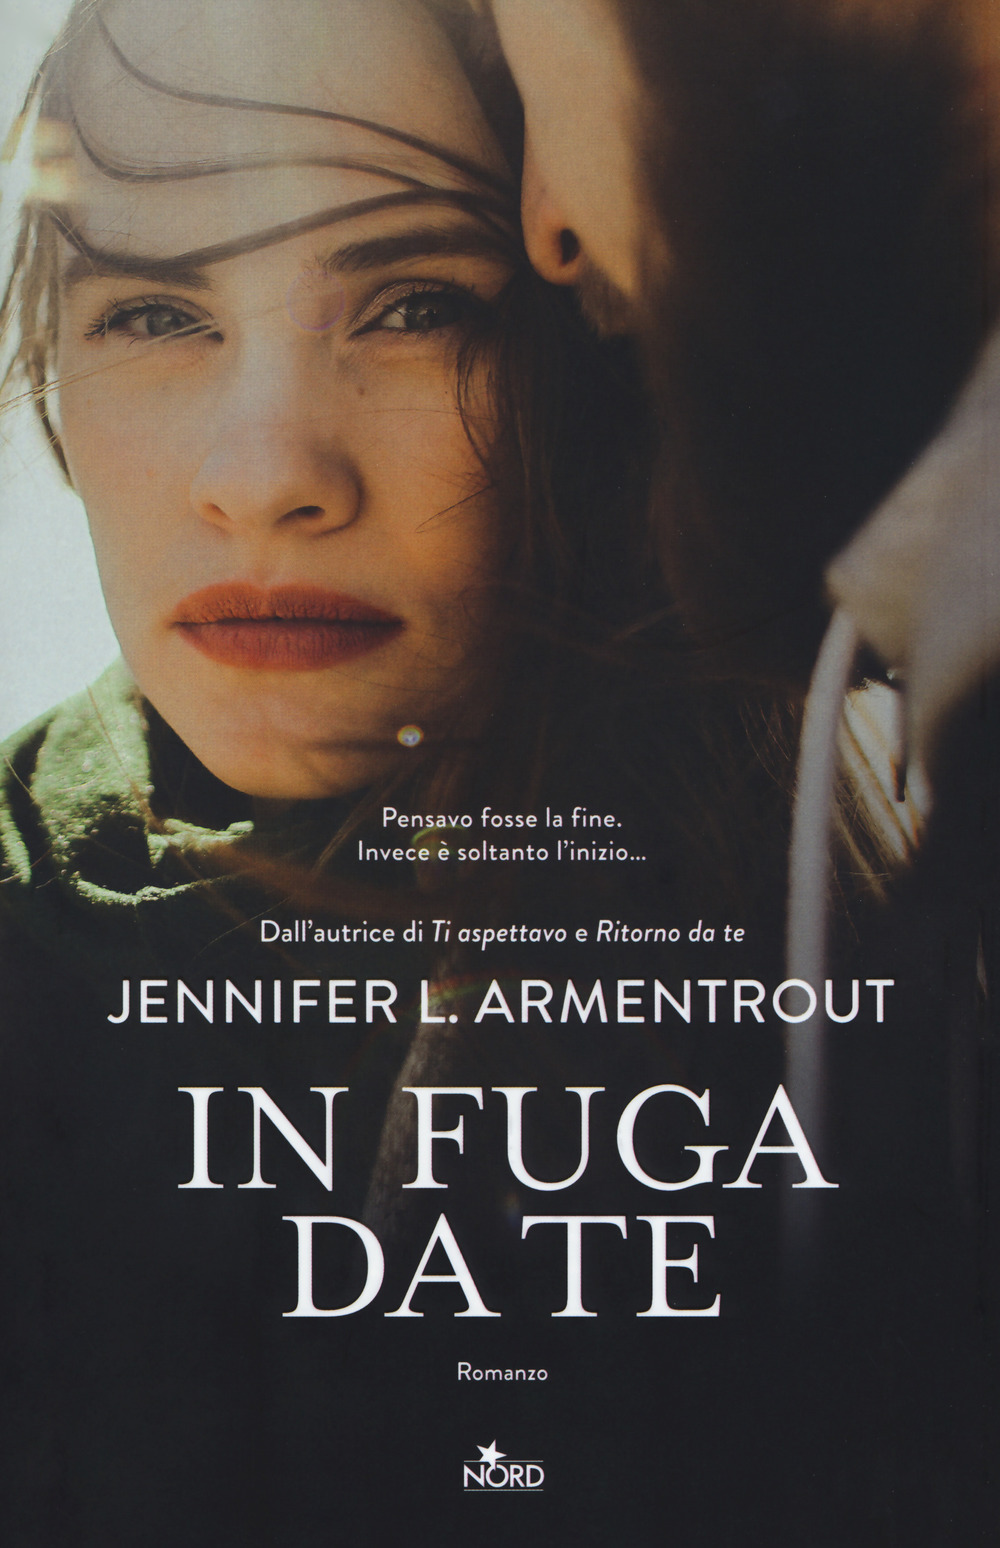 Wicked Libro Libro In Fuga Da Te Wicked 3 Di Jennifer L Armentrout